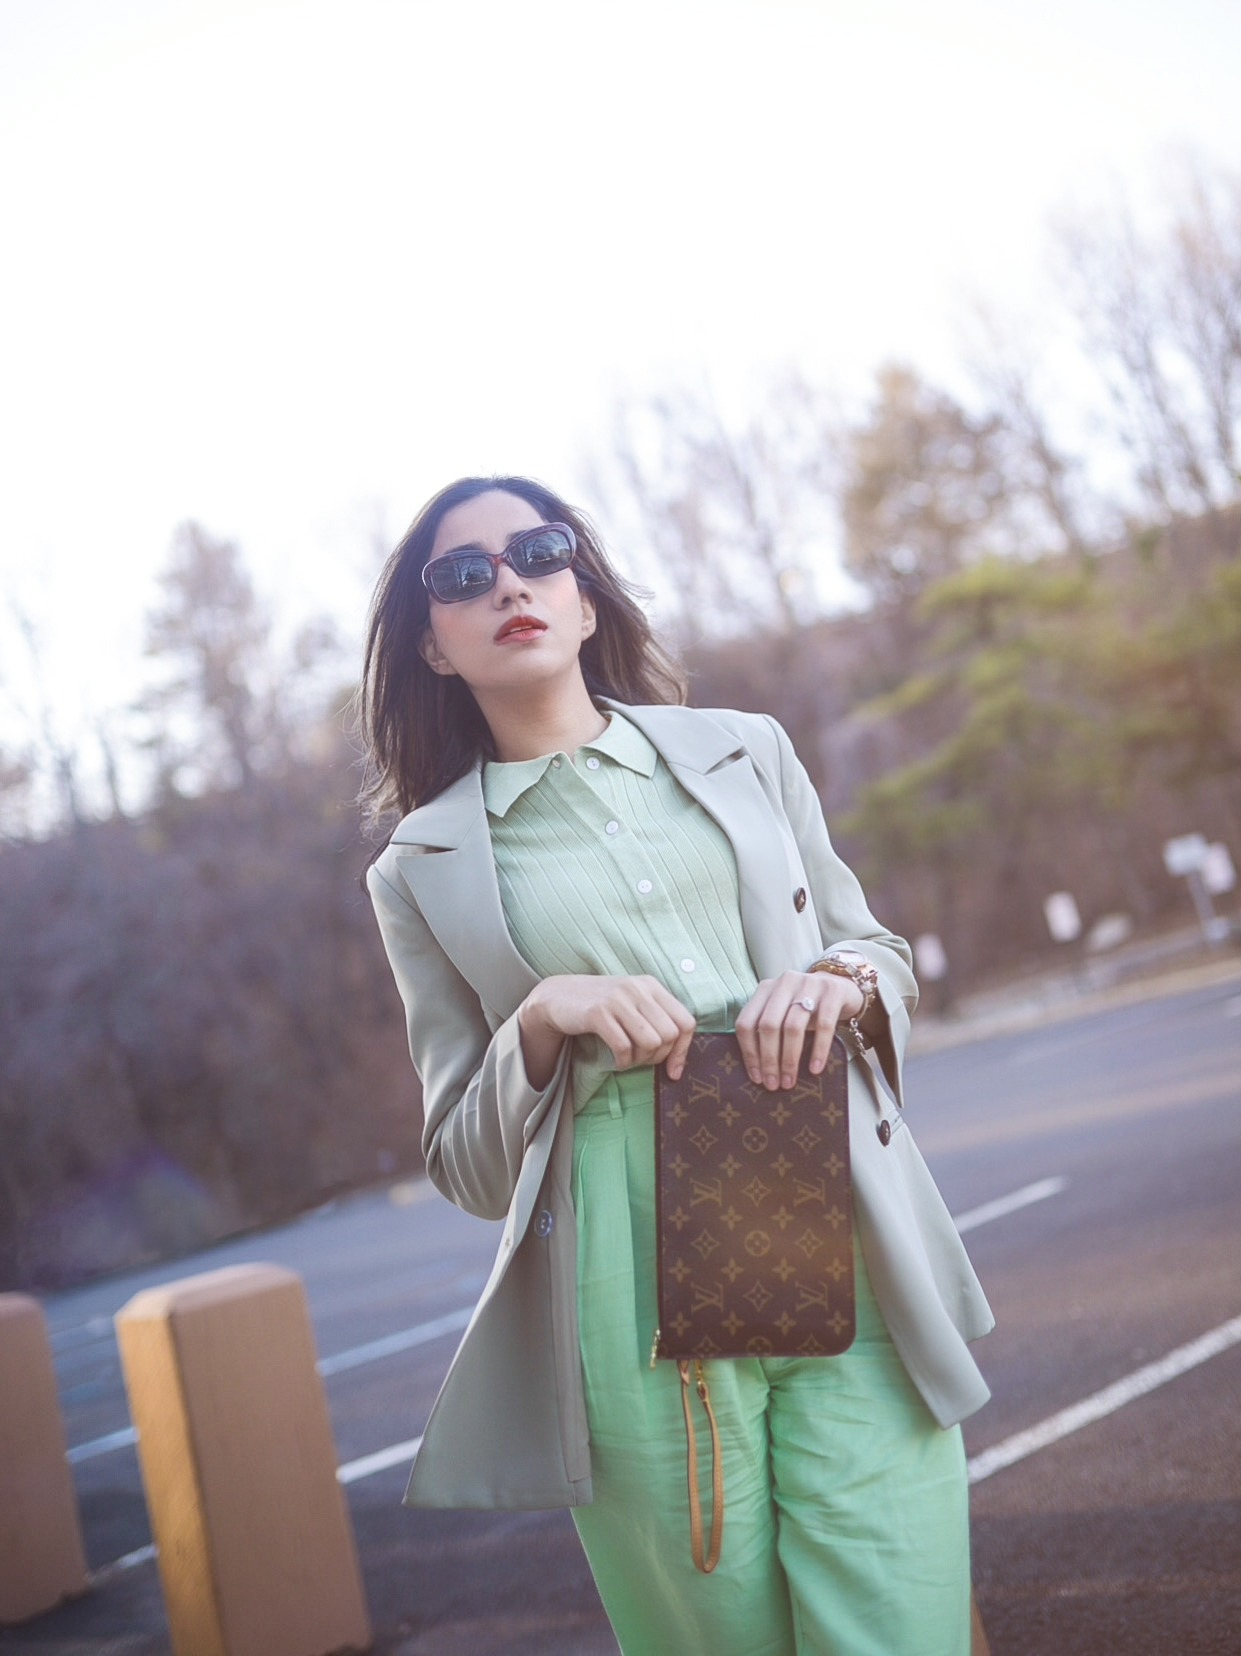 Style Secrets Every Classy Woman Should Know Monchrome look mint green spring colors 1